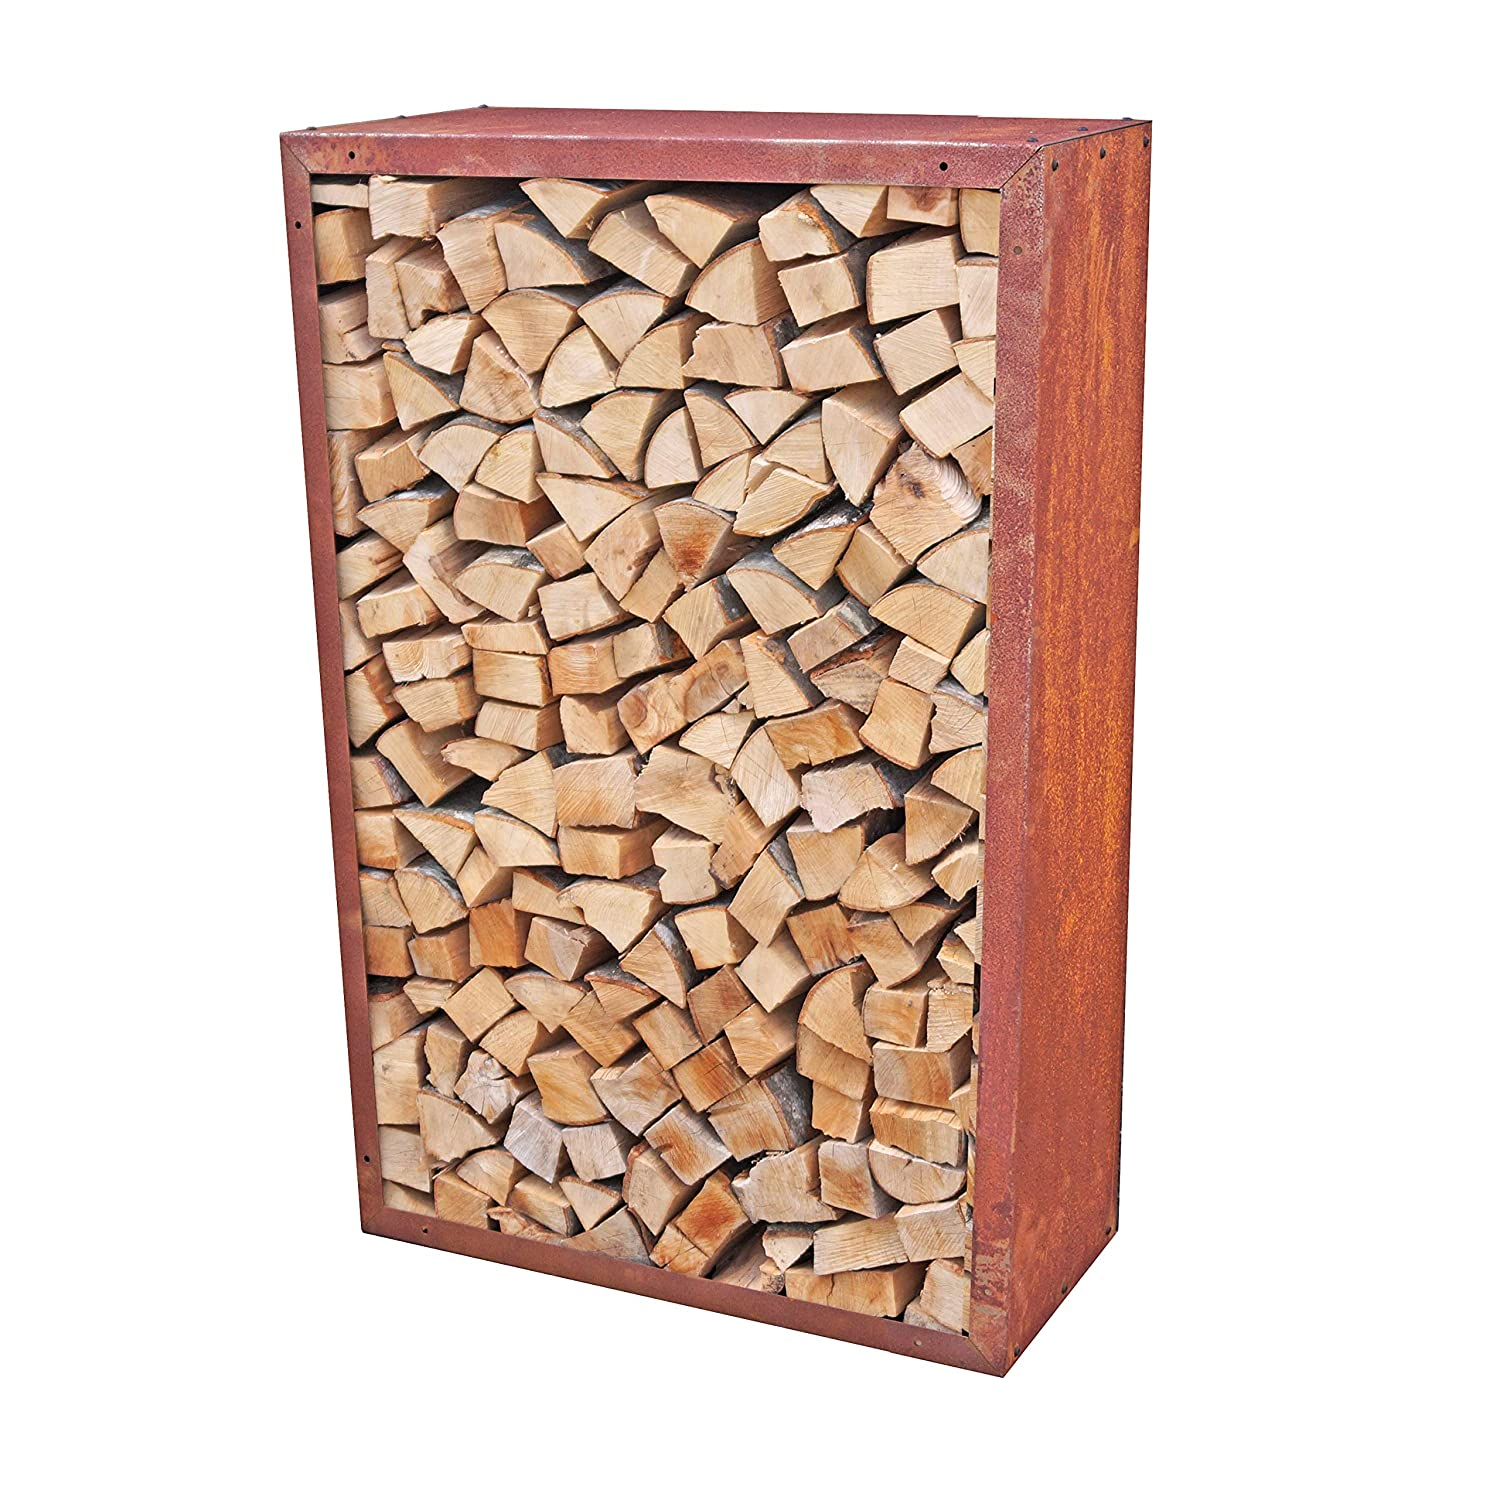 firewood rack prima terra infinita patina length 15.0 in. width 15.0 in. depth 11.8 in.